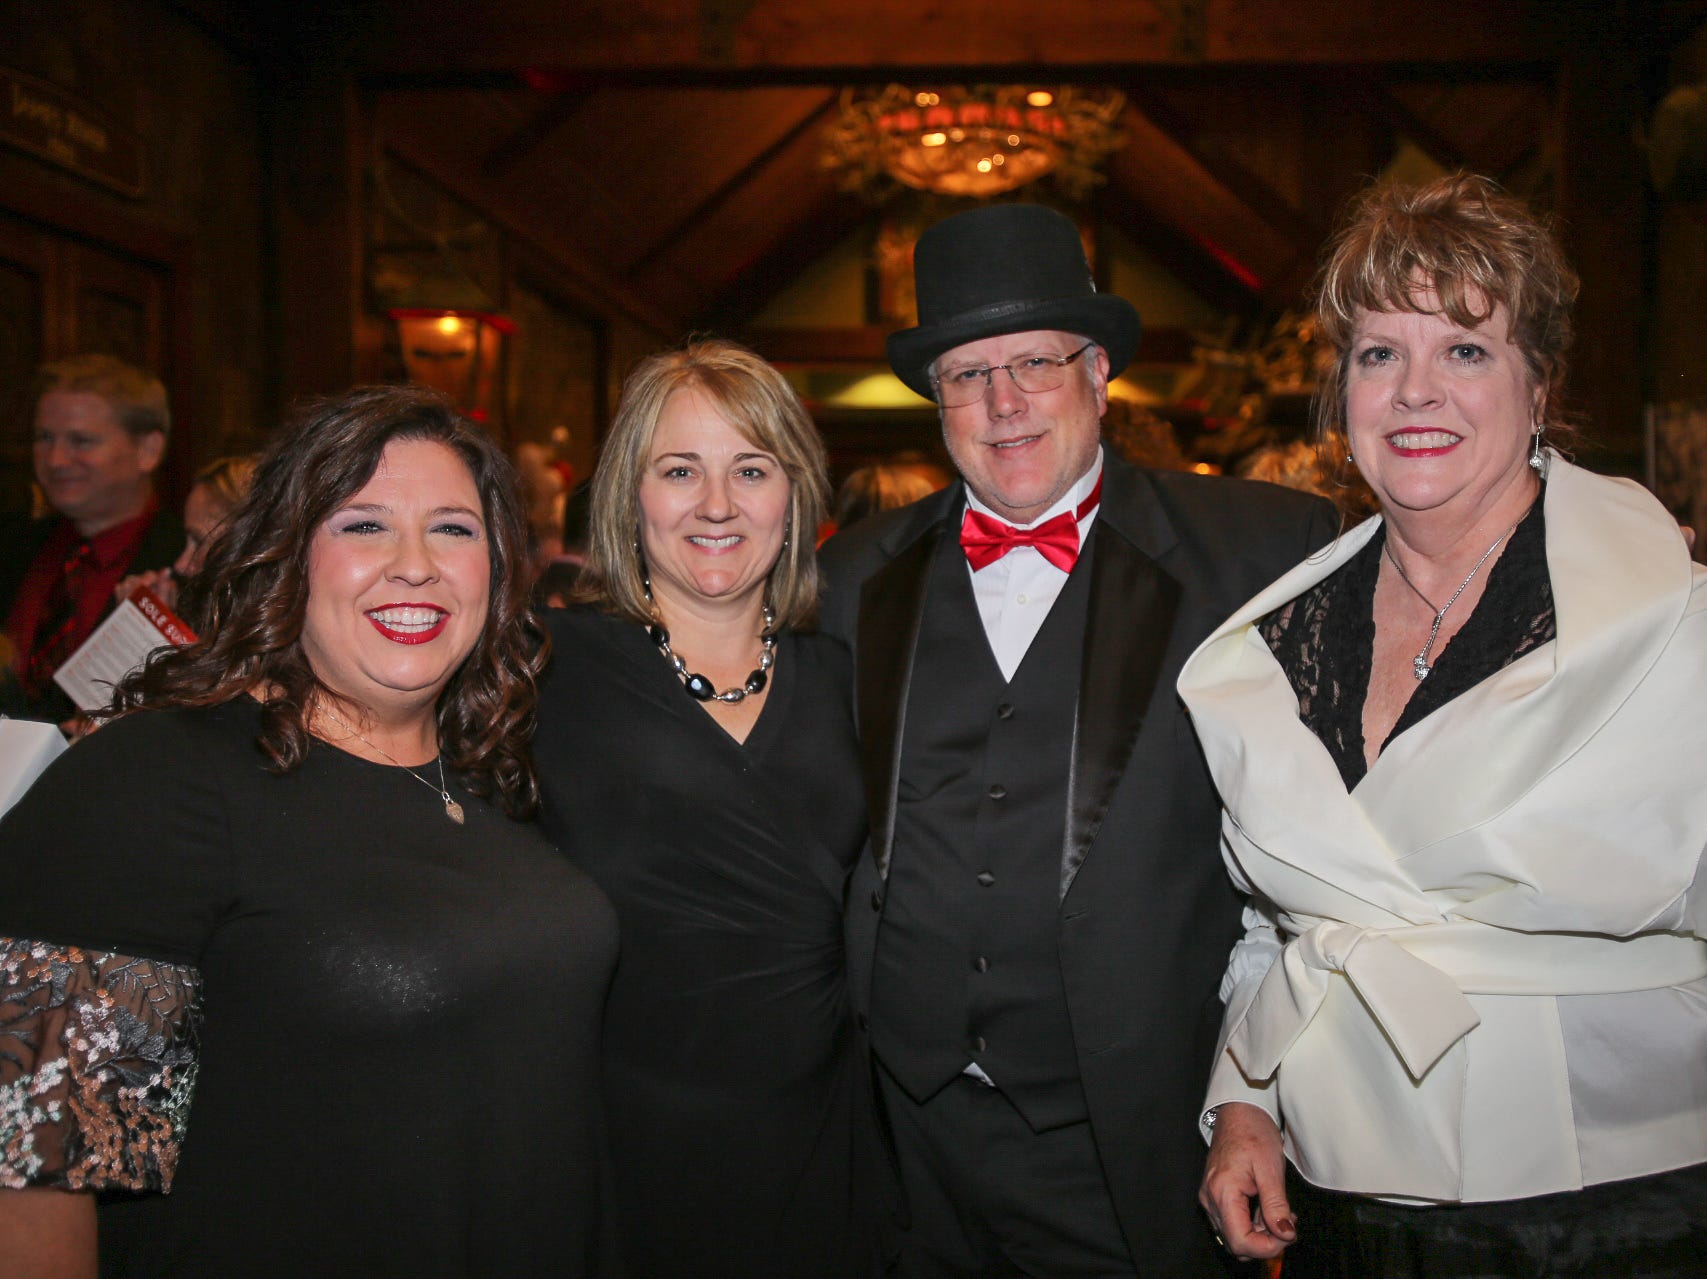 Annie Copeland, Karen and Brian Clark, and Kathy Pence